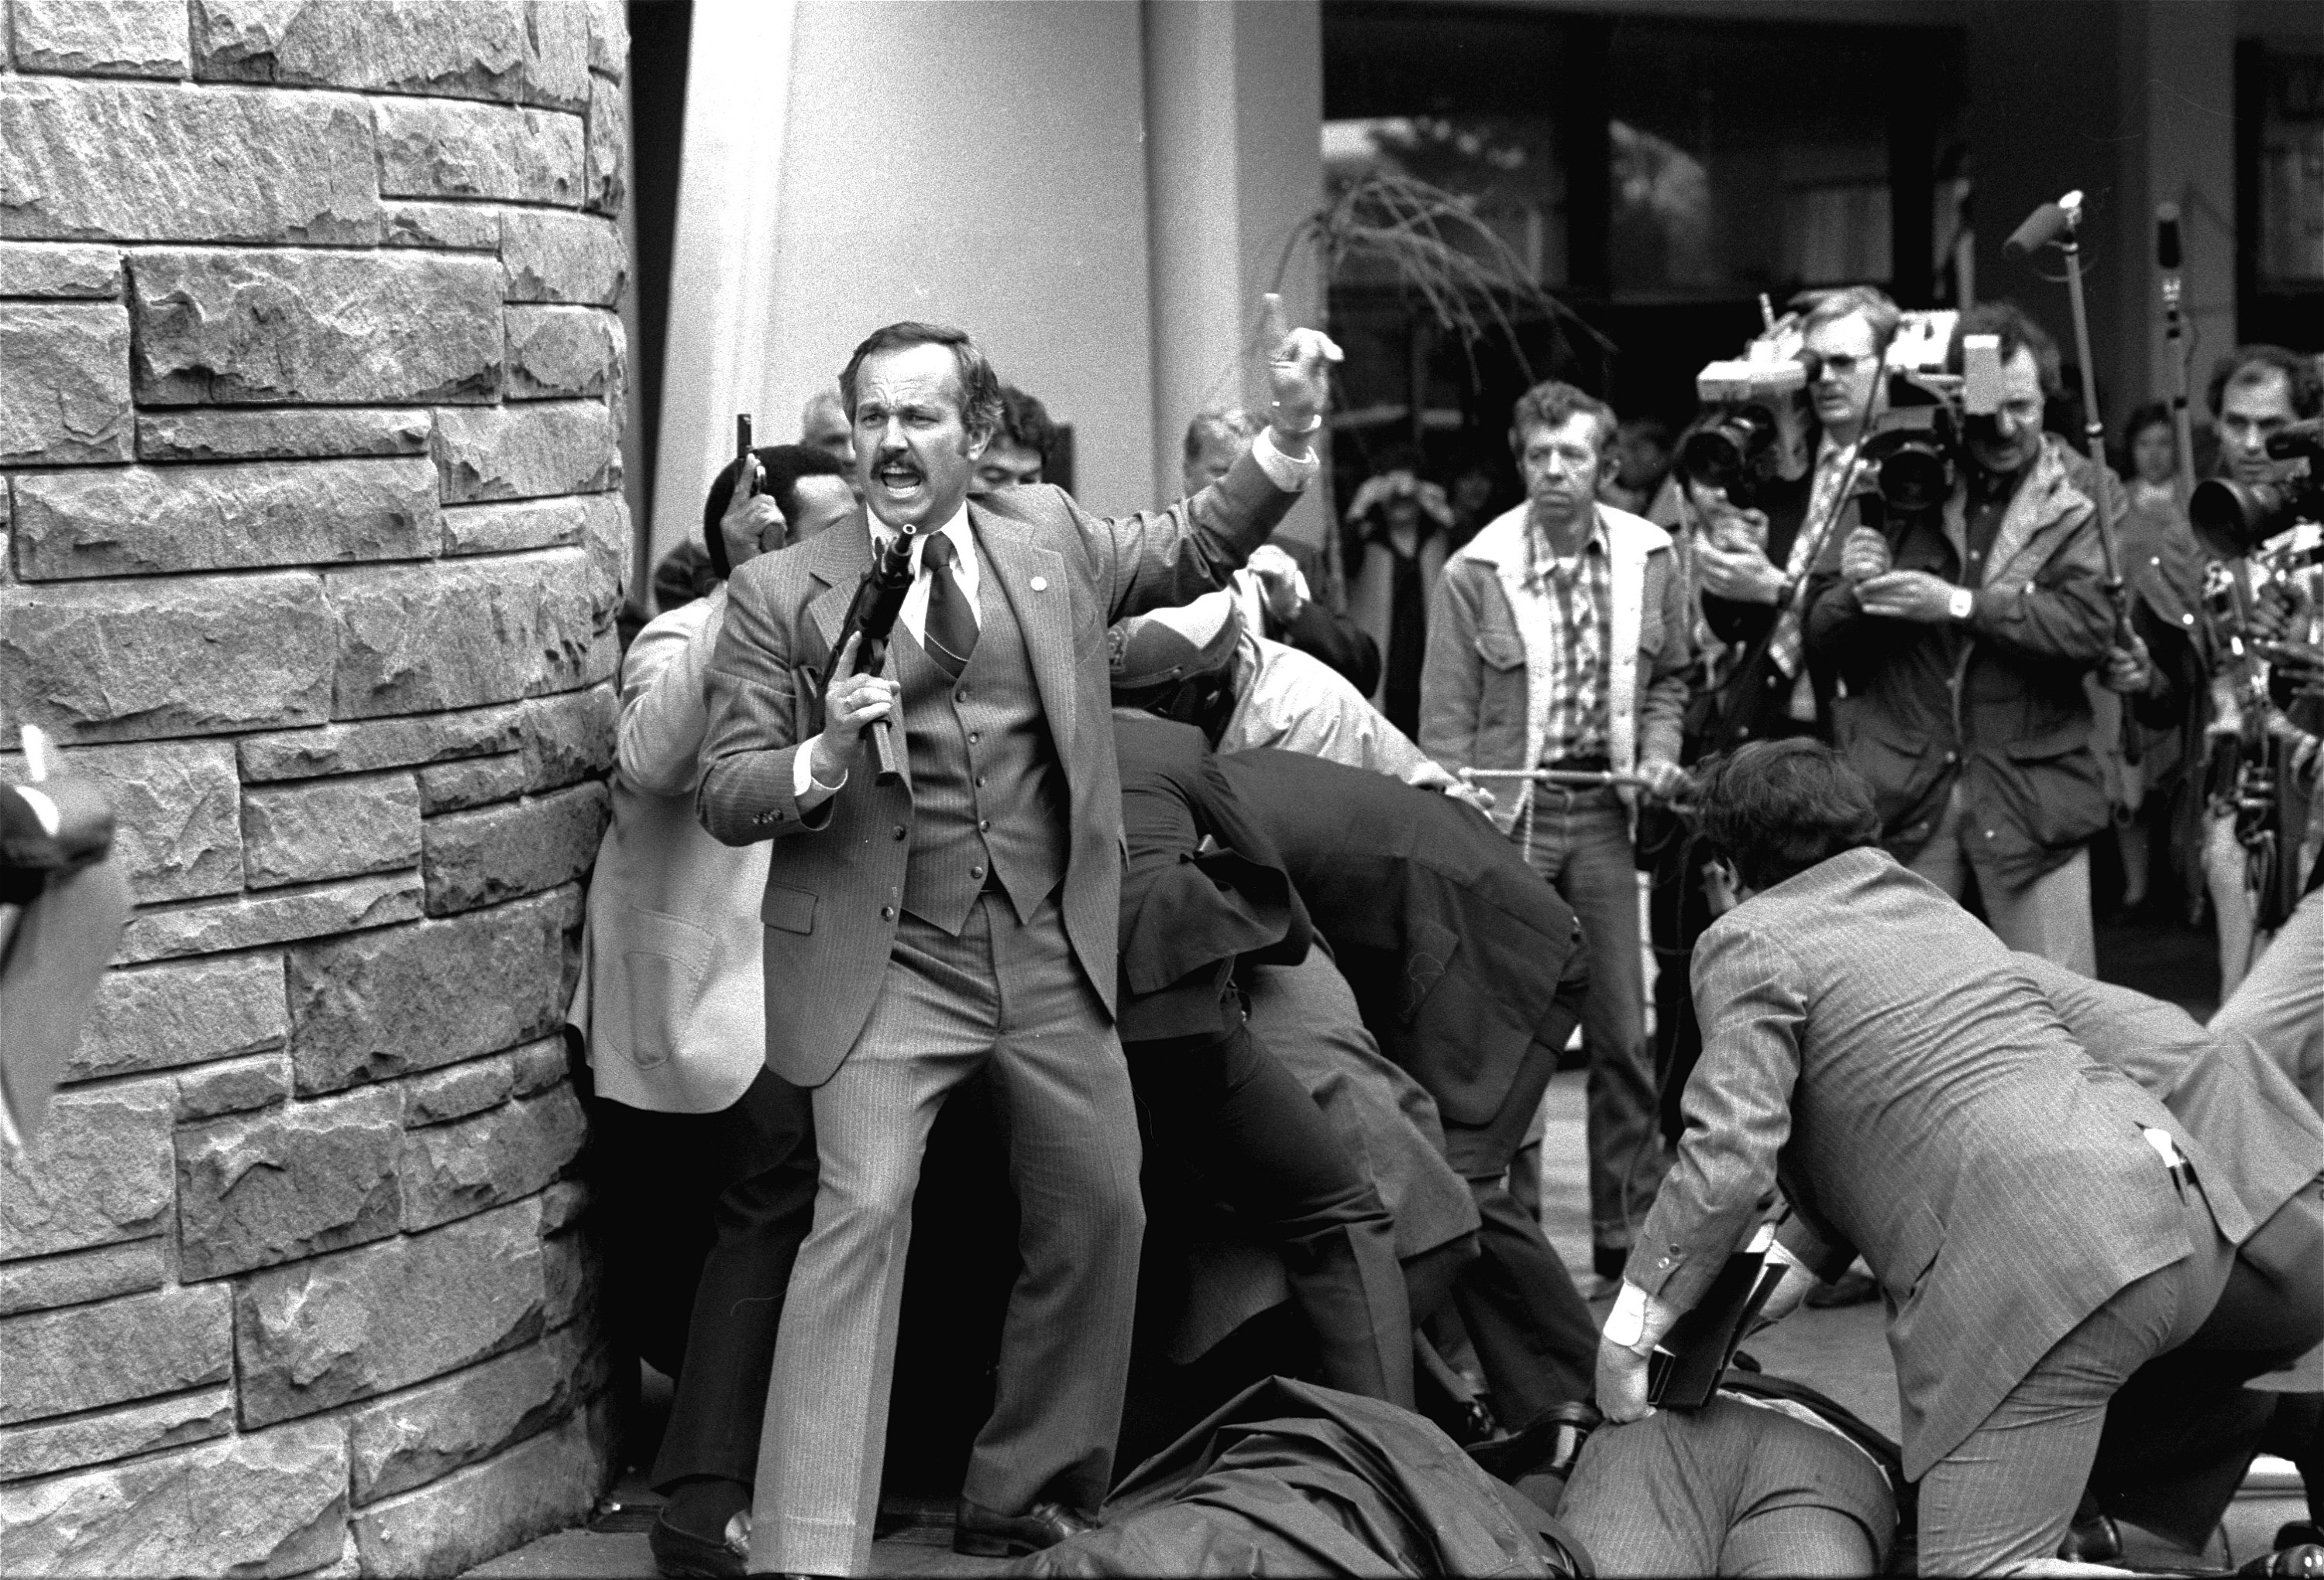 Must-see photos of the attempted assassination of President Ronald Reagan in 1981 - pennlive.com